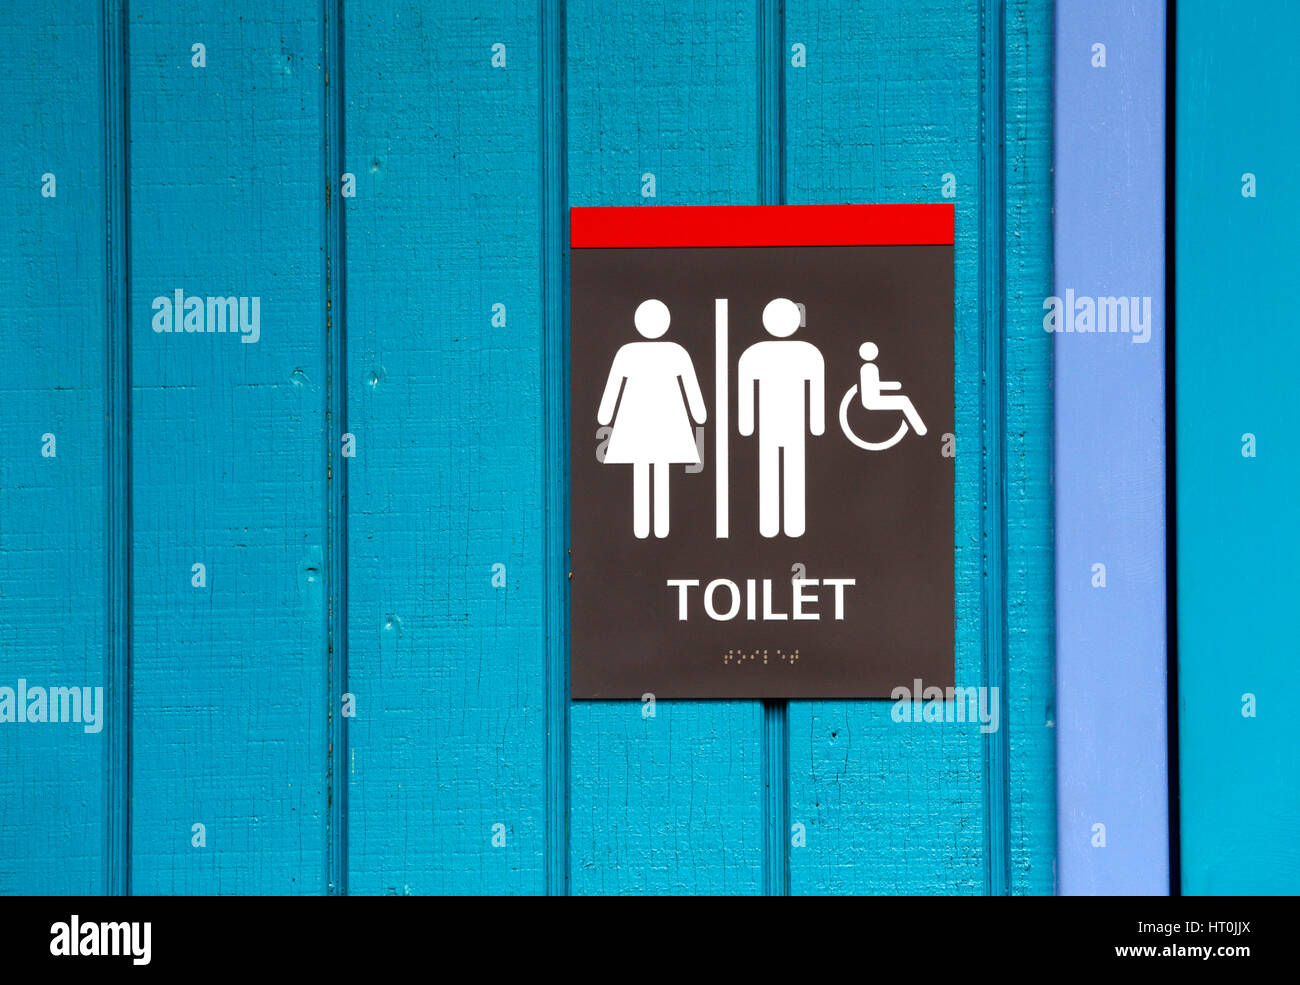 sign artist with binaries bathroom img neutral to gender hopes signs flush sponsored